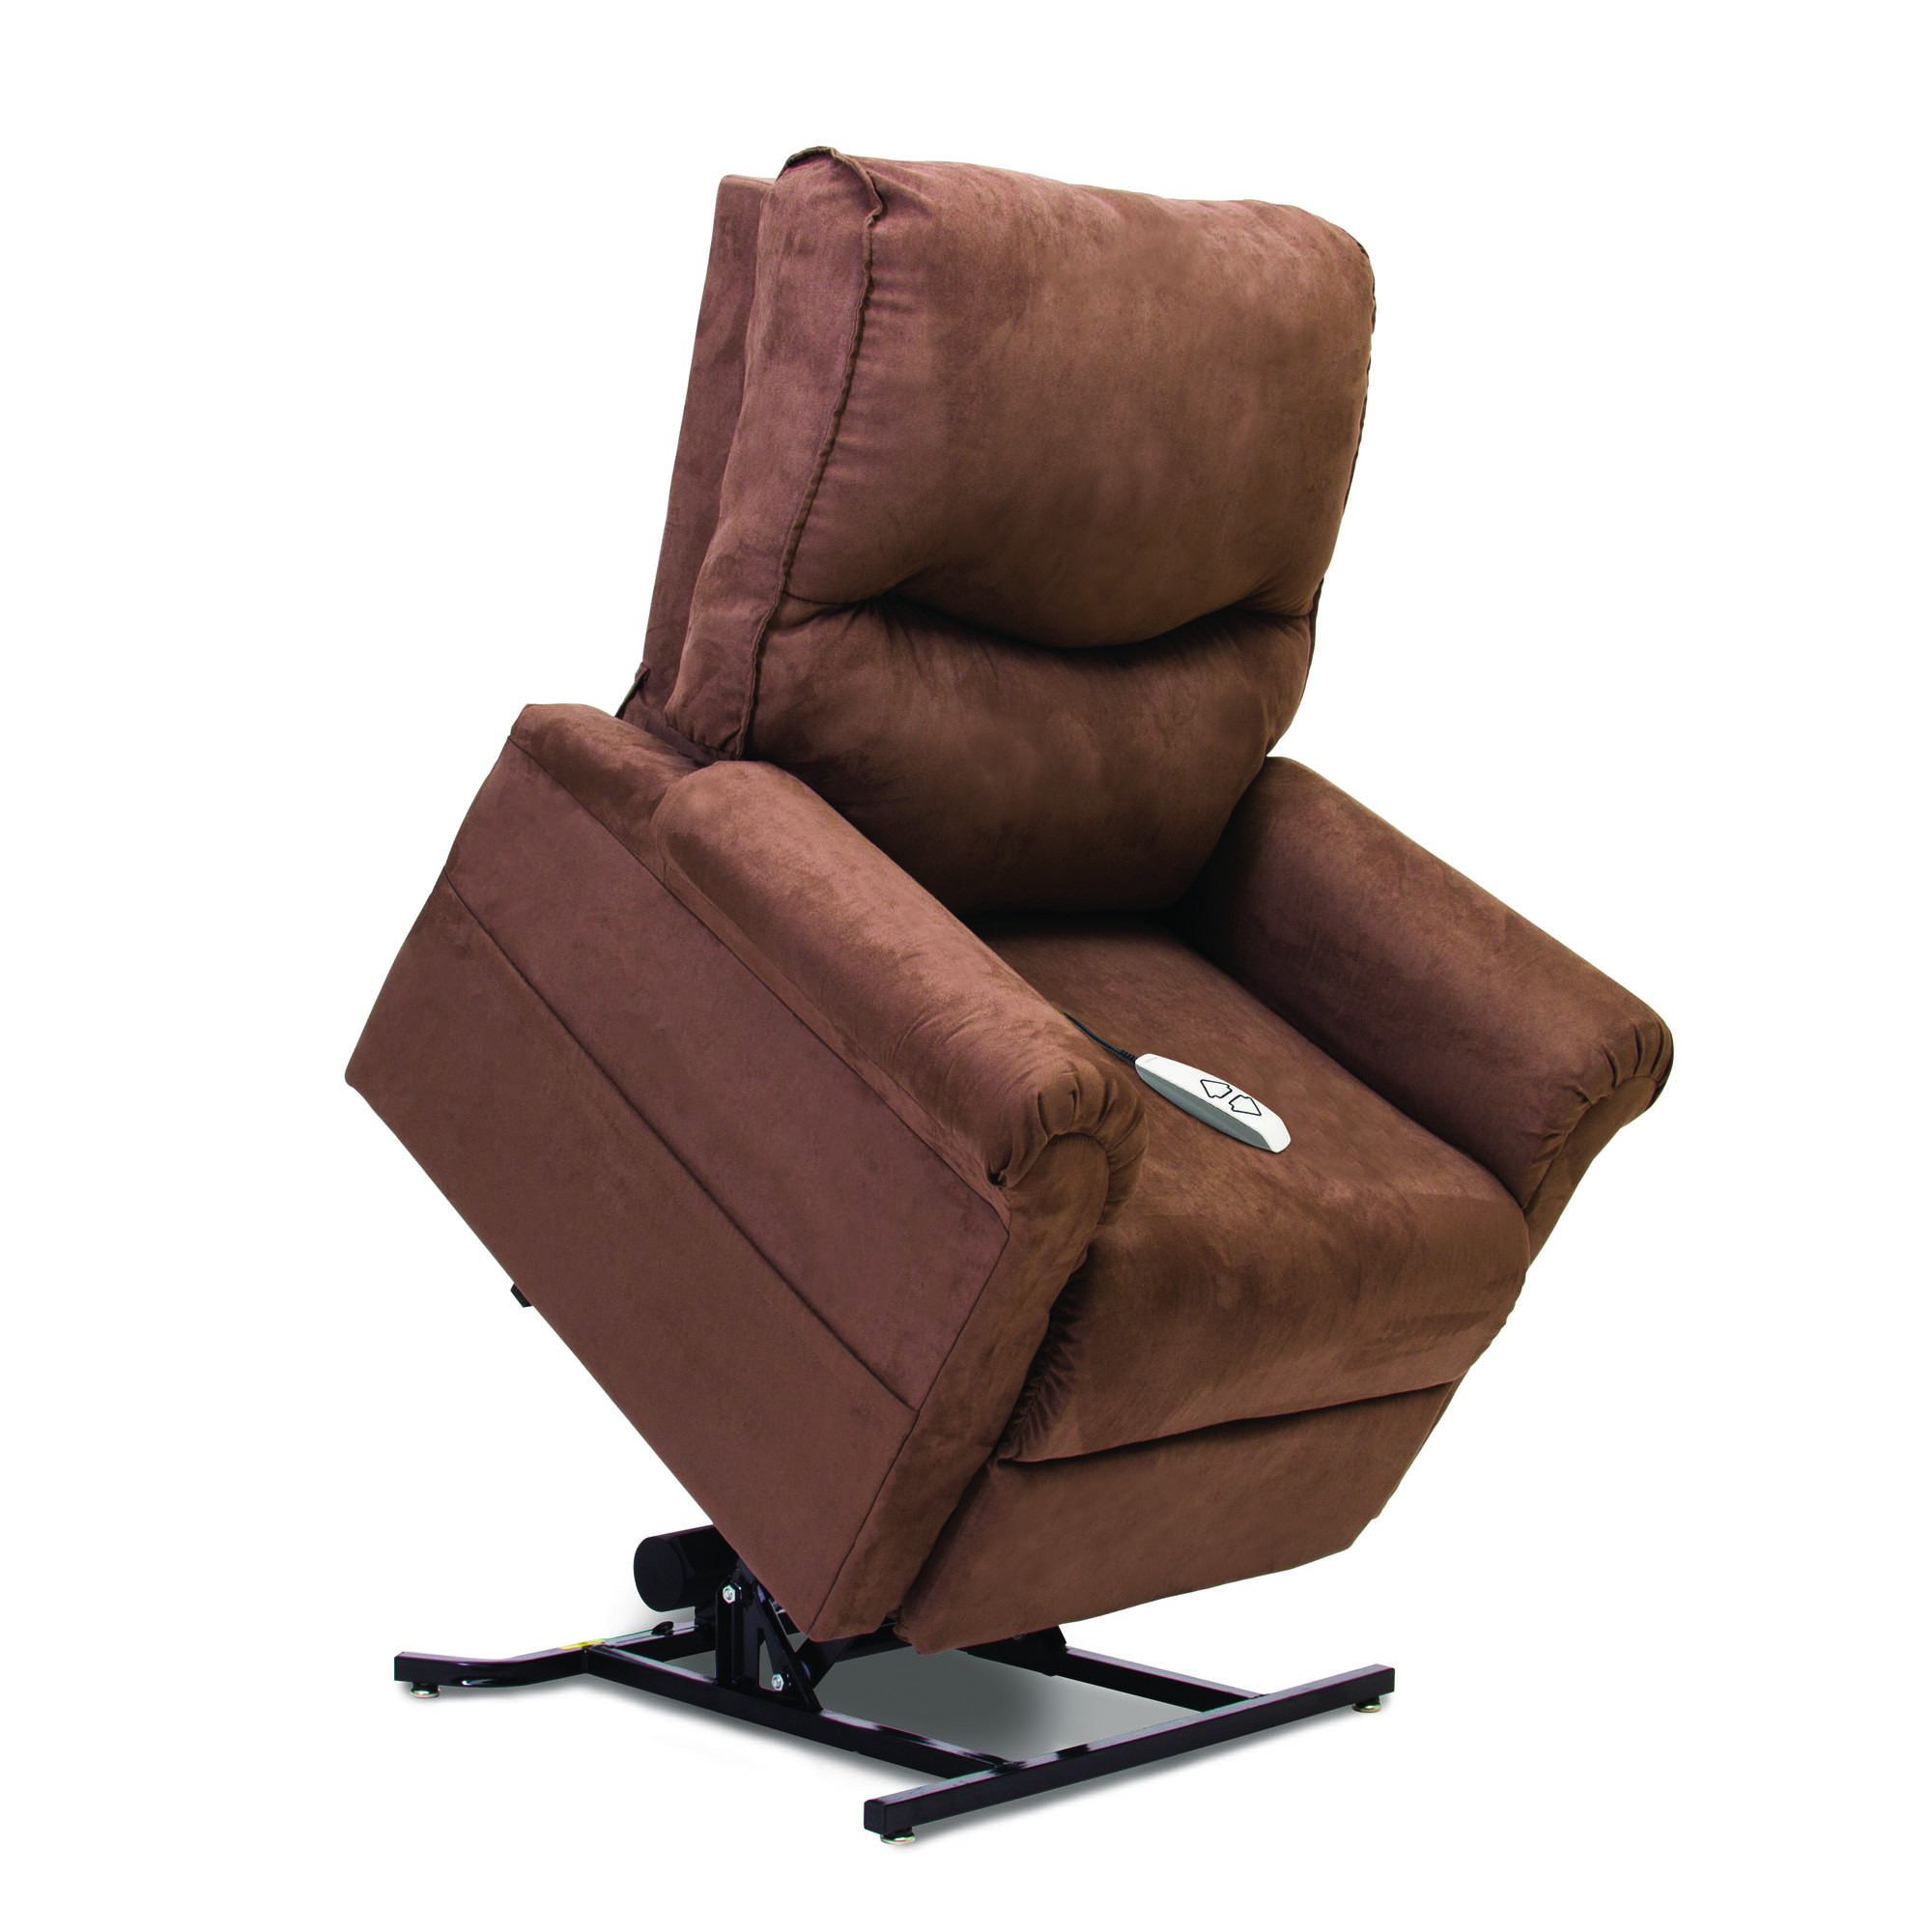 lift recliner chairs for sale portable wheel chair pride essential lc 105 3 position